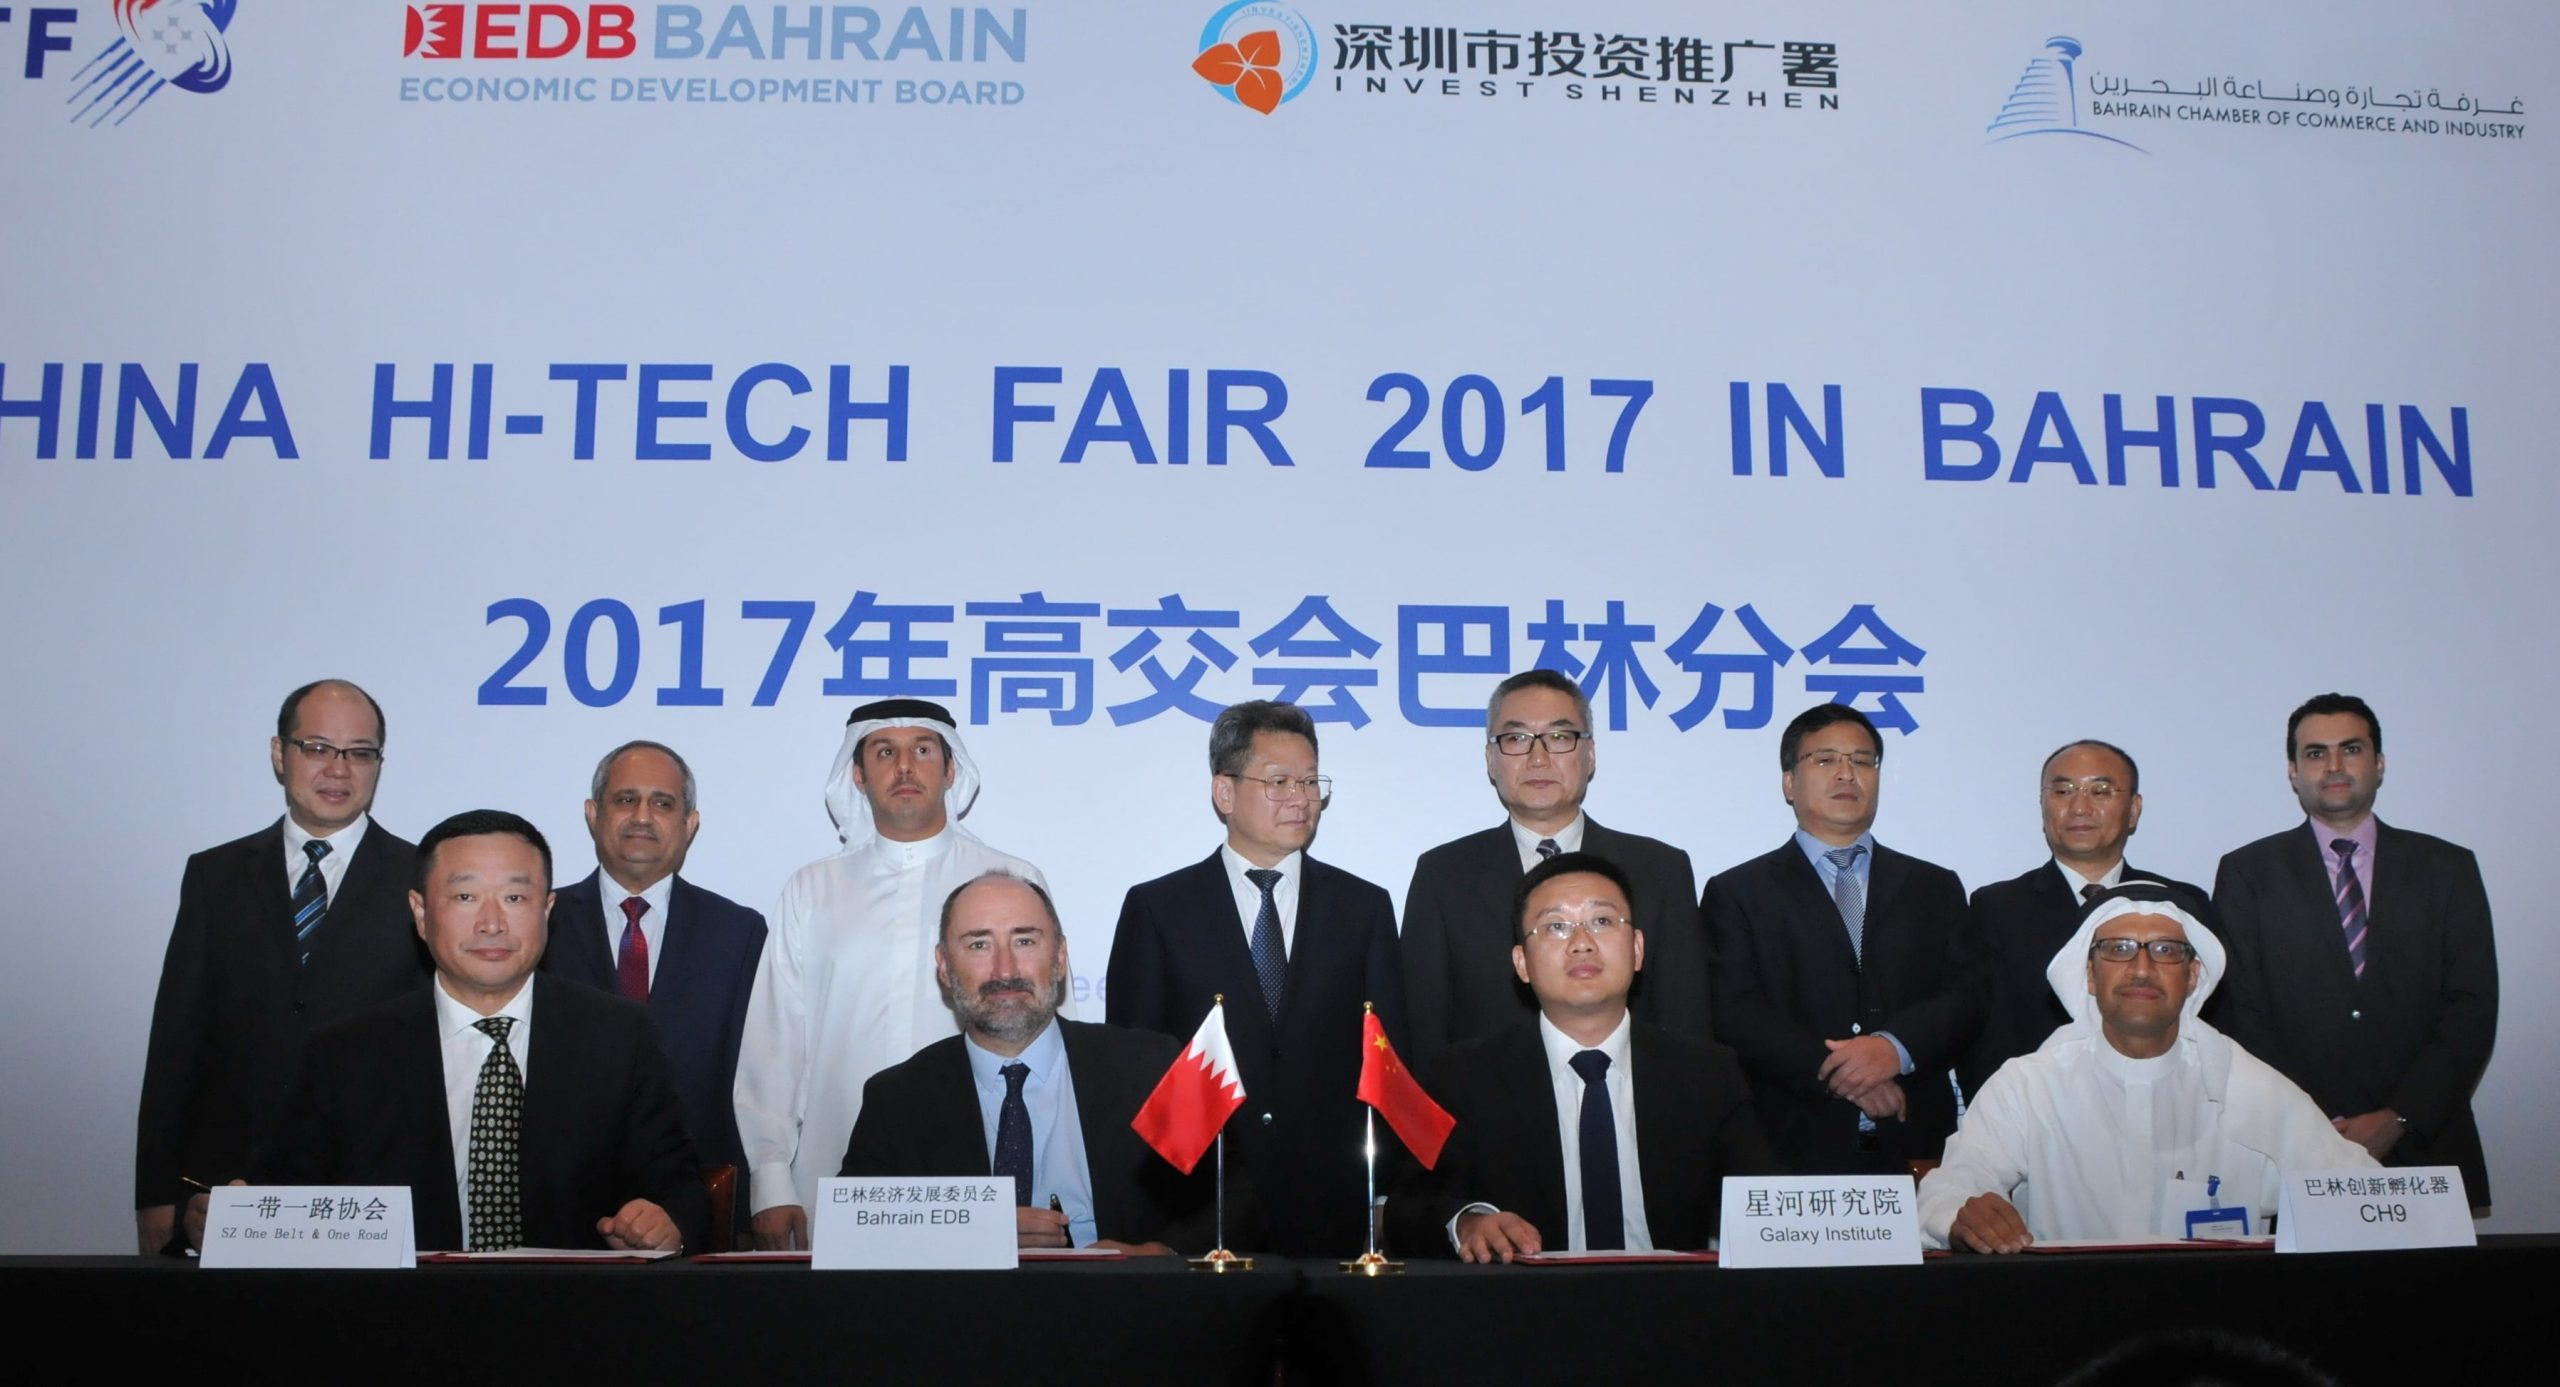 Bahrain EDB signs three agreements to promote stronger economic ties with China